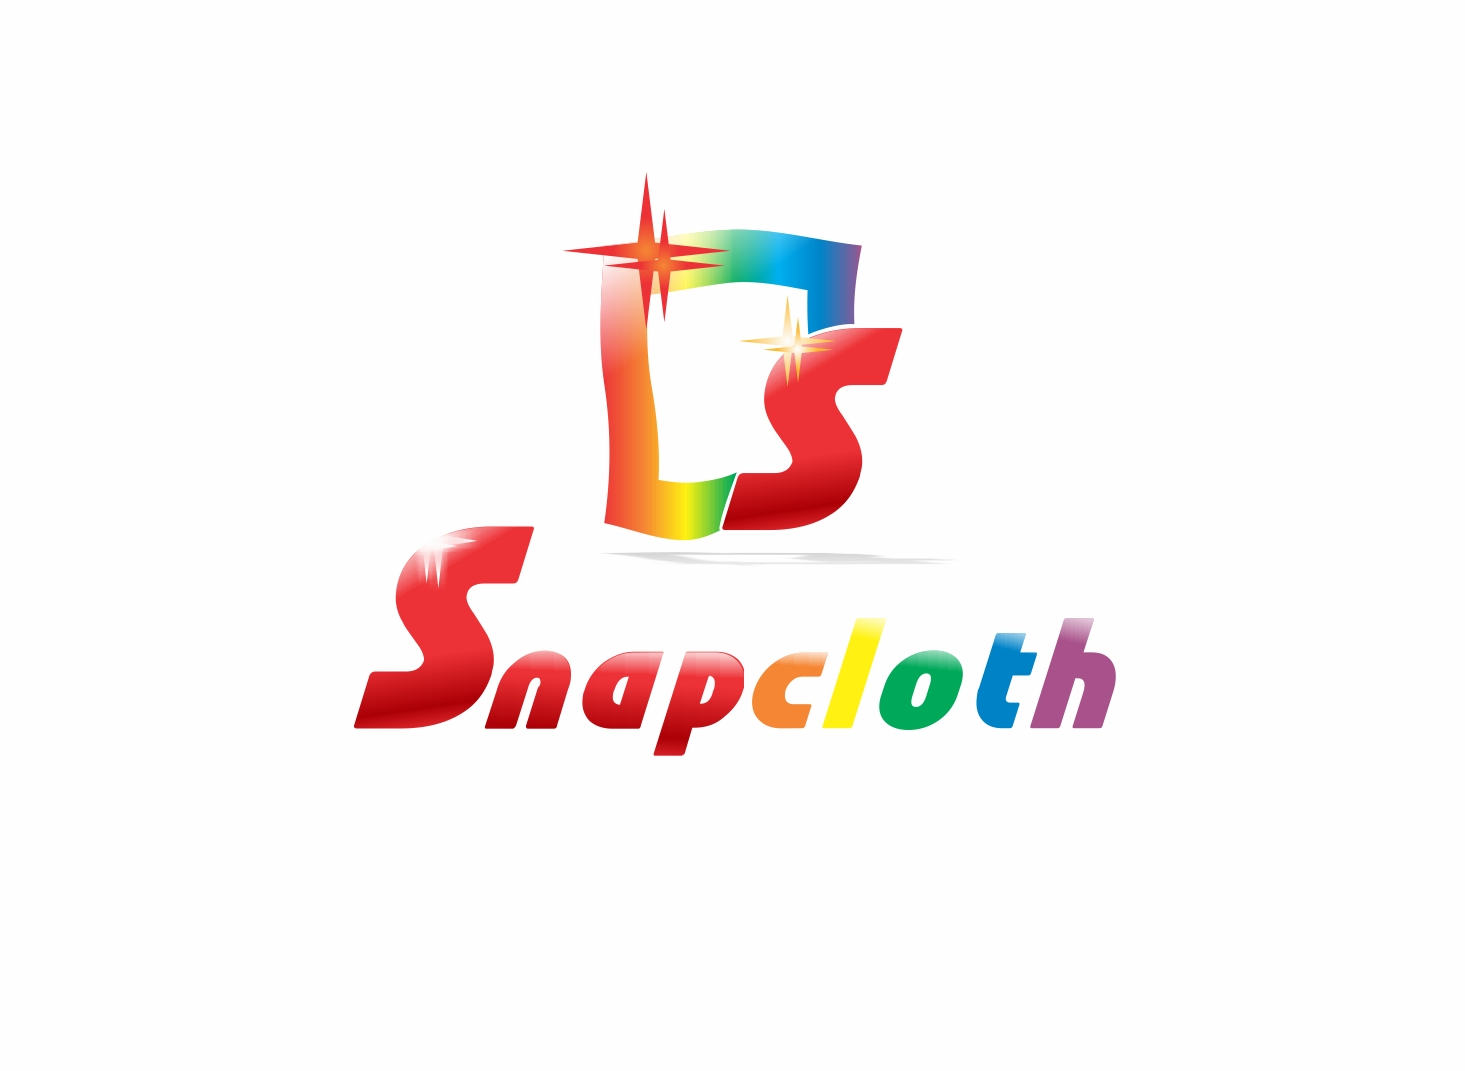 Logo Design by Zdravko Krulj - Entry No. 38 in the Logo Design Contest Snapcloth Logo Design.